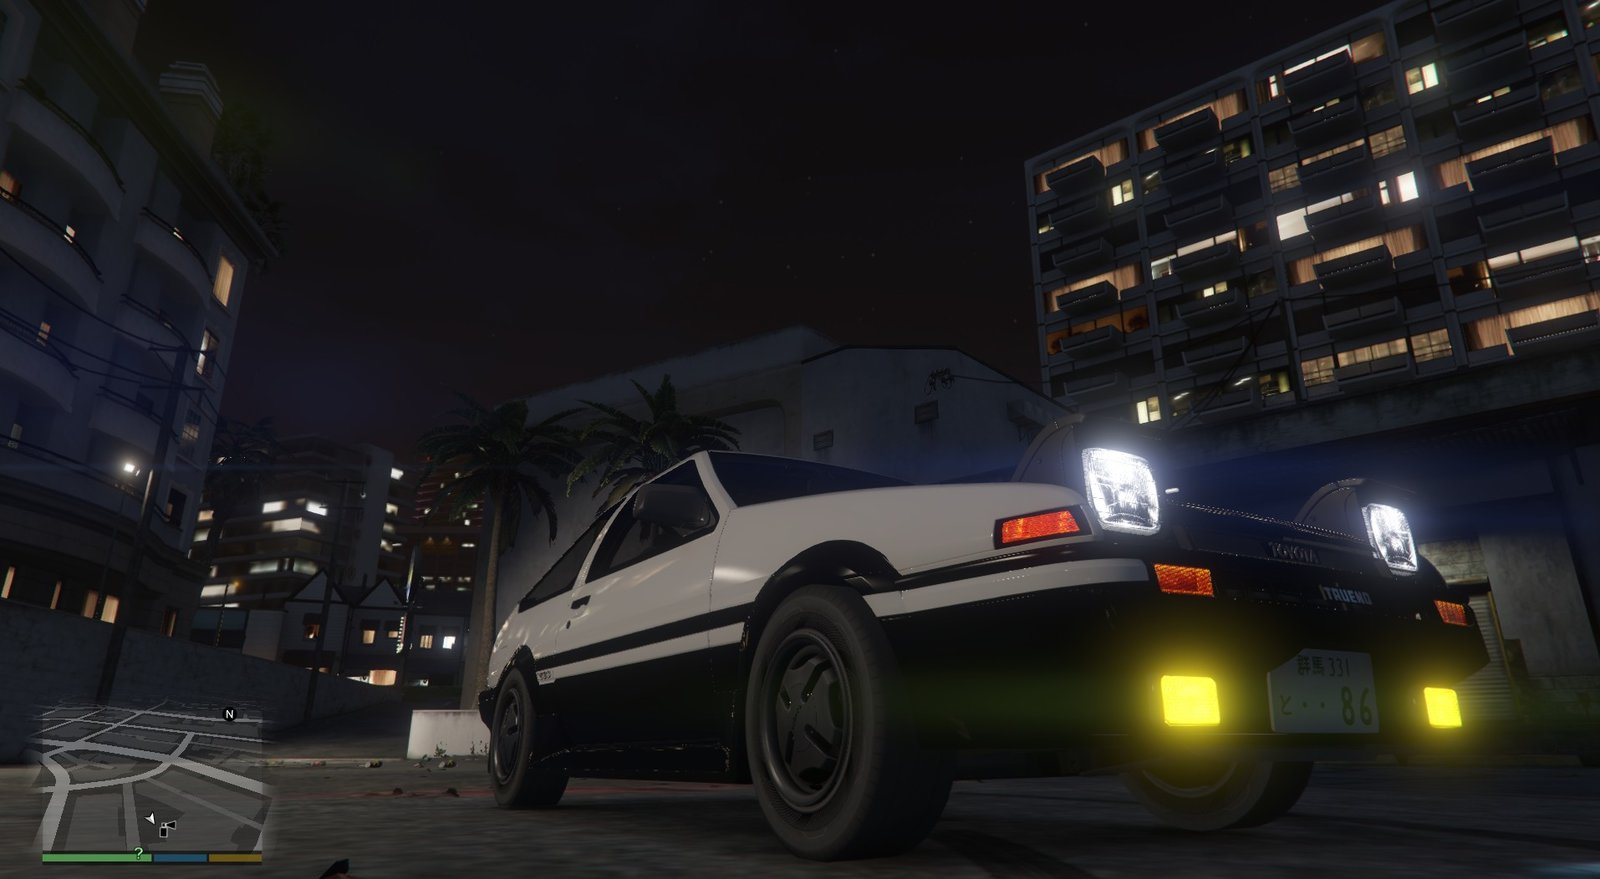 Toyota ae86 sprinter pack add on tuning gta5 for Toyota 86 exterior mods